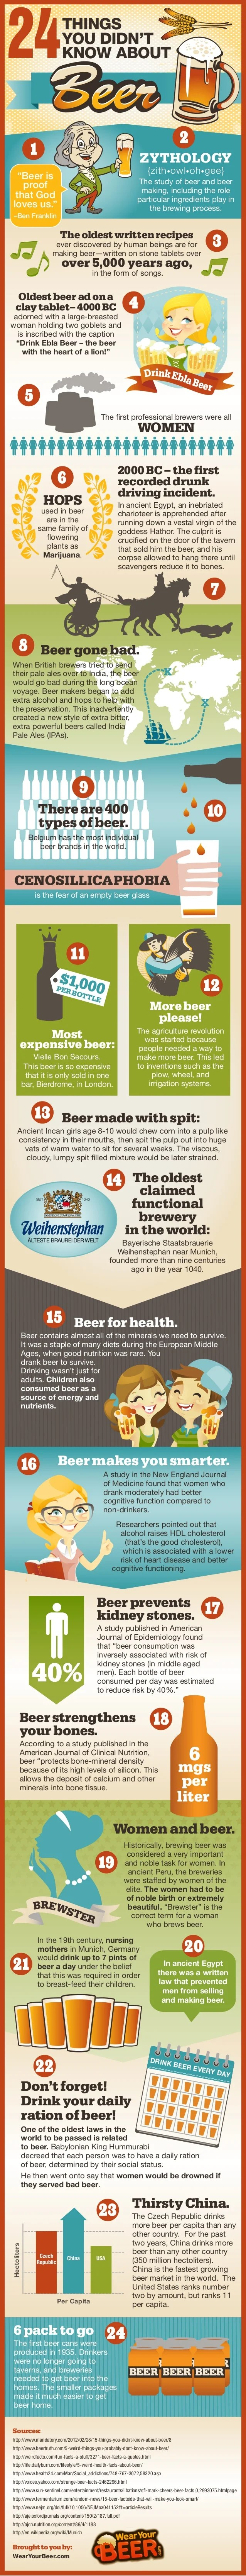 24 Things You Didn't Know About Beer - INFOGRAPHIC